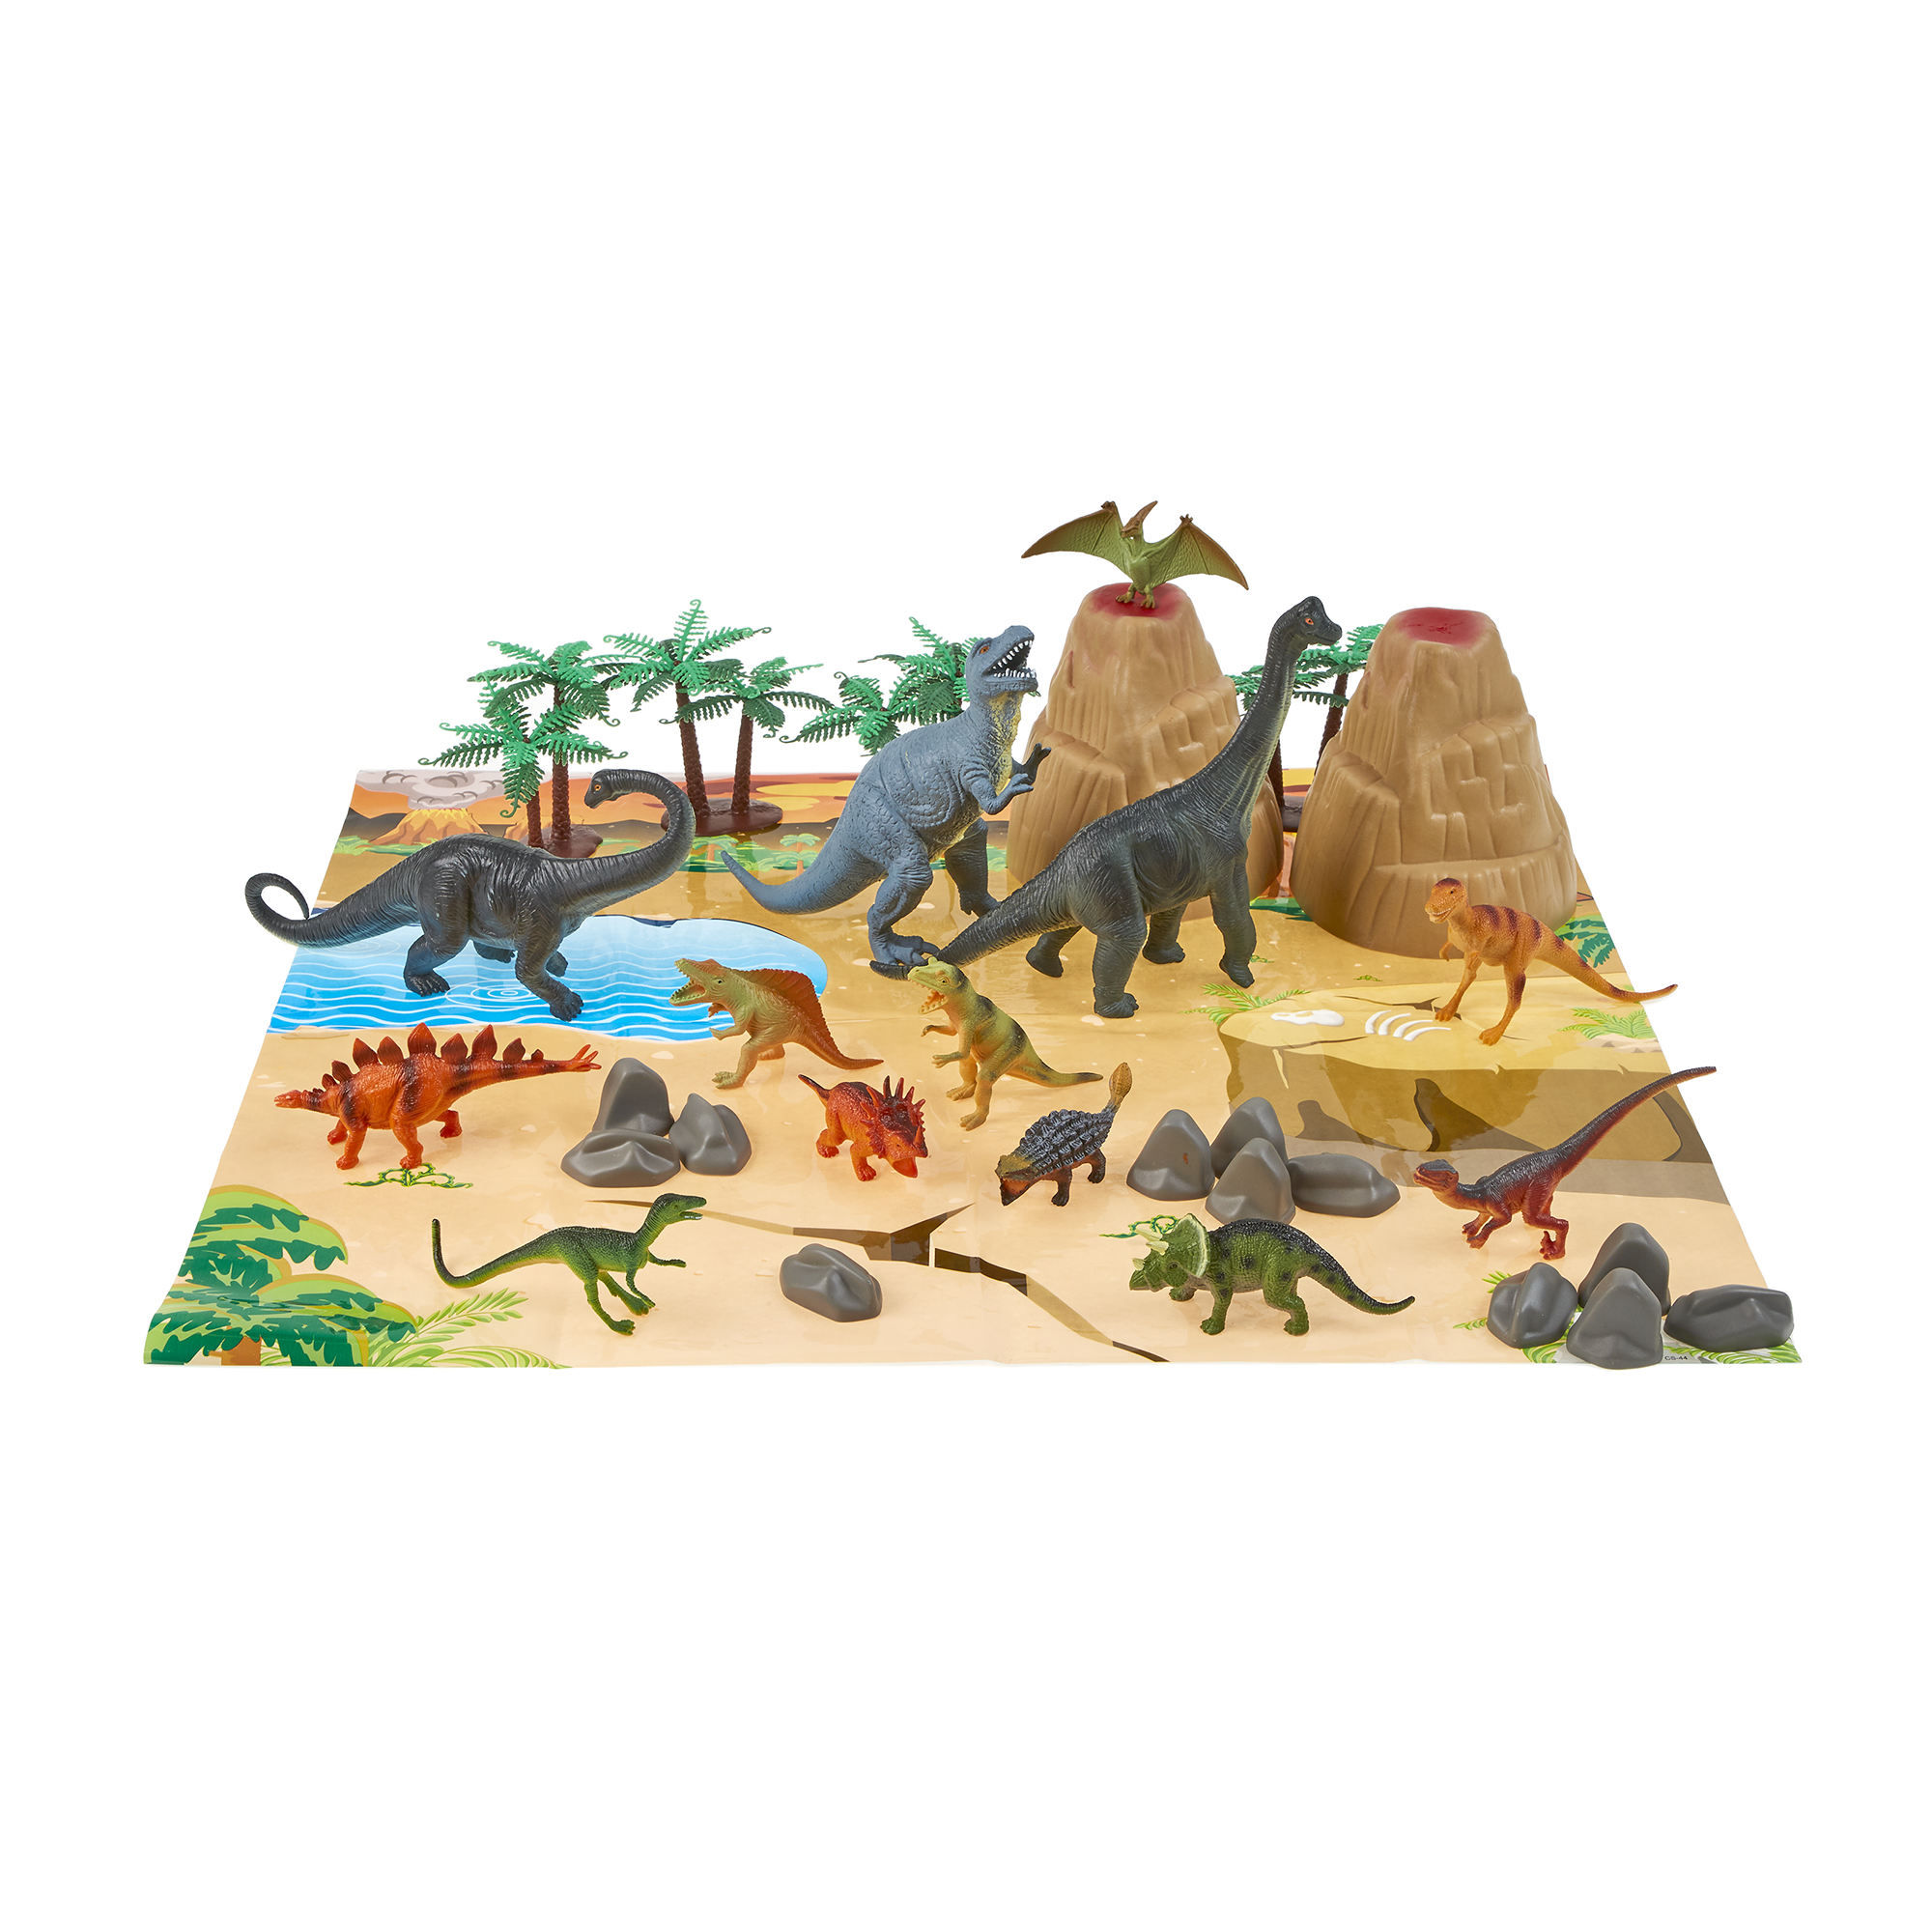 18 Toy Dinosaurs In Tub With Dinosaur Playmat Animals & Dinosaurs